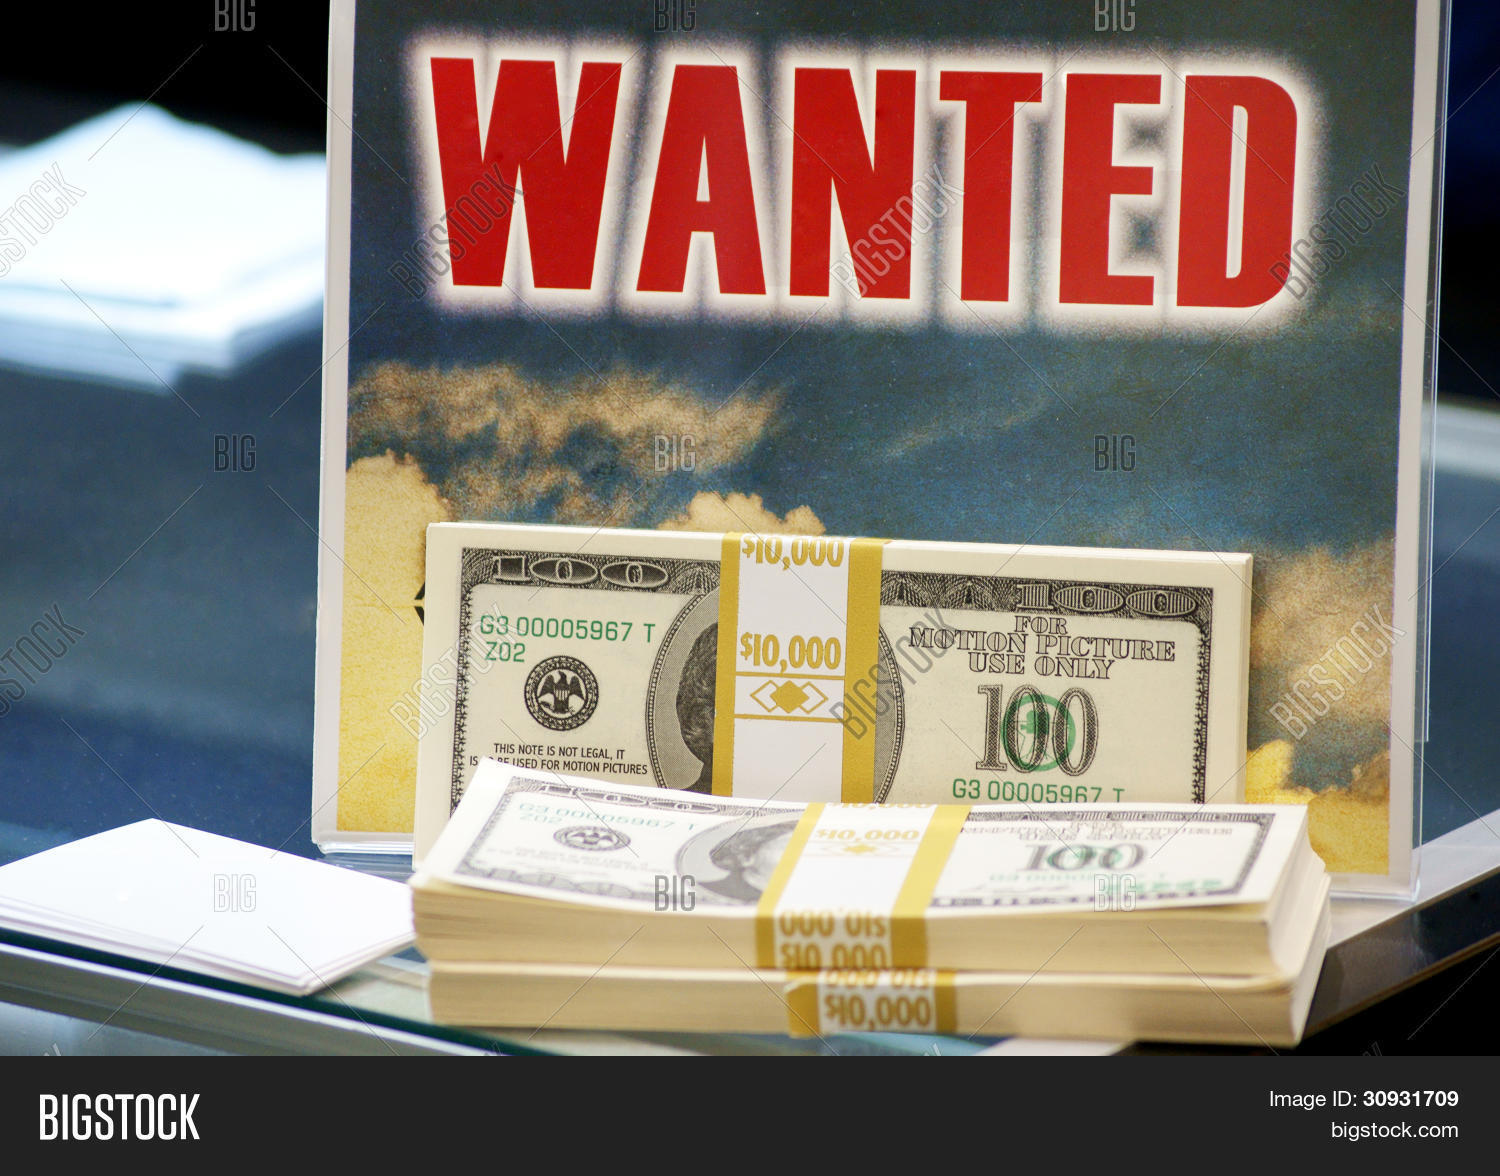 Wanted - Money Image & Photo (Free Trial) | Bigstock